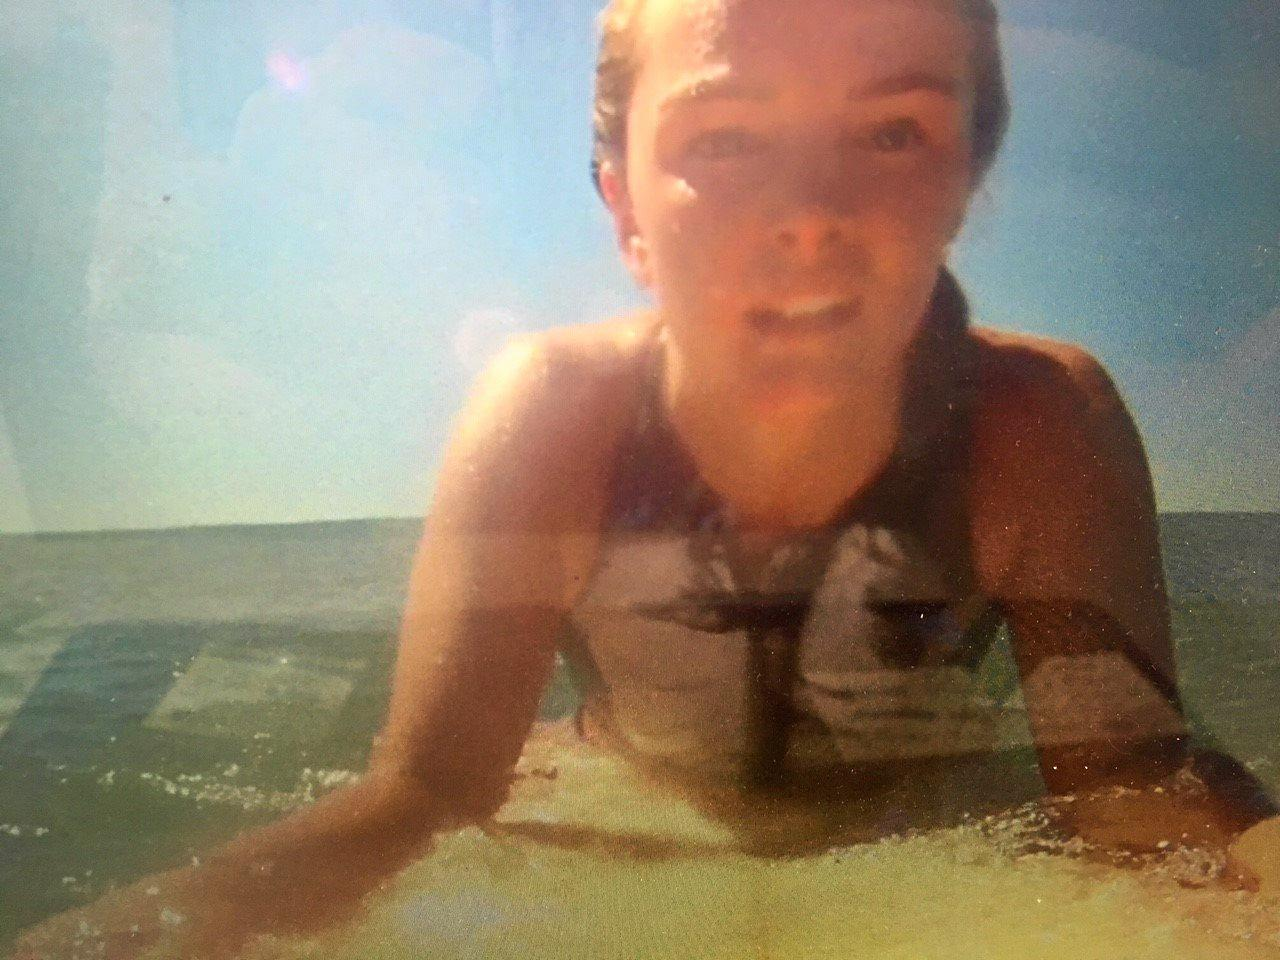 The GoPro was found in Maroochydore by a young family on holiday.